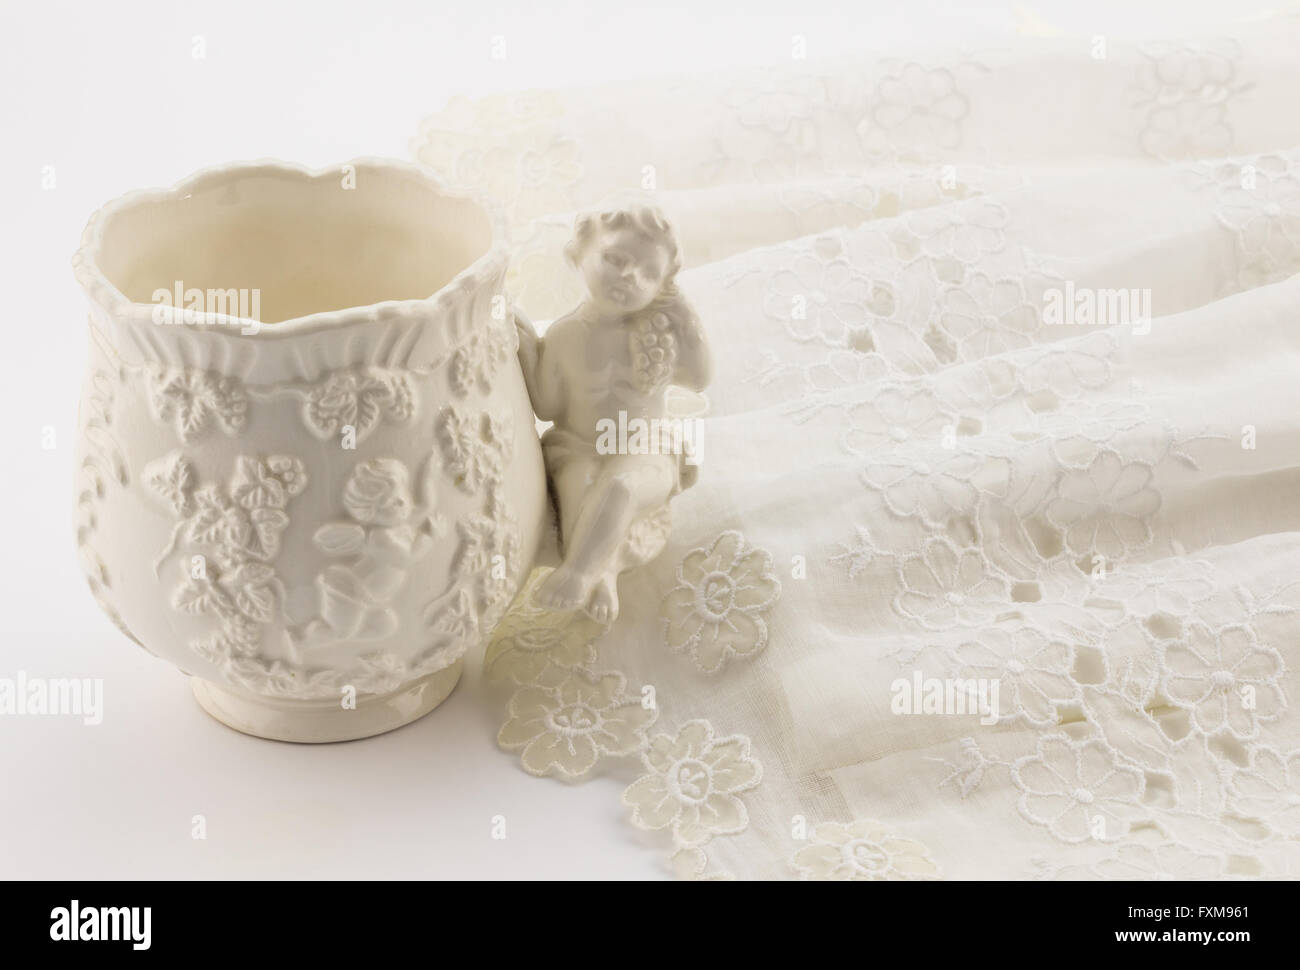 Vintage white baptism cup and baby christening dress isolated on white background - Stock Image